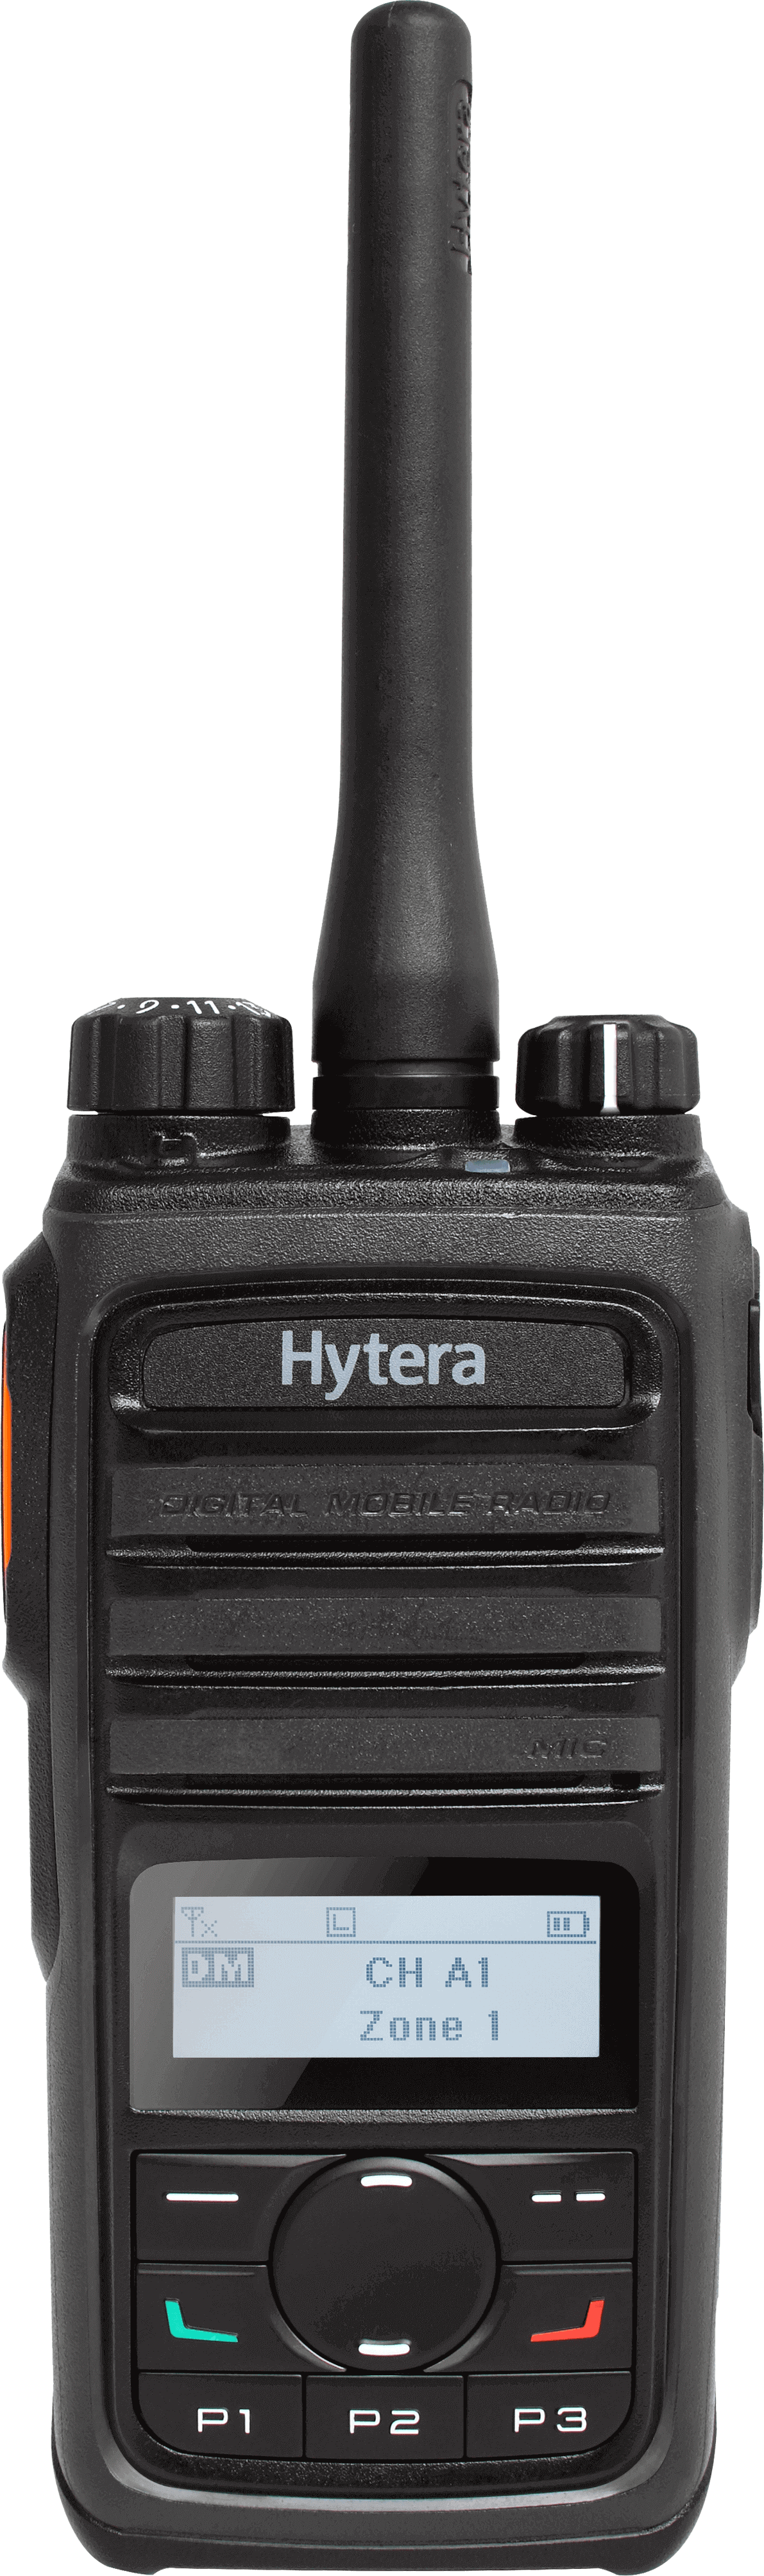 Hytera PD565 featured image